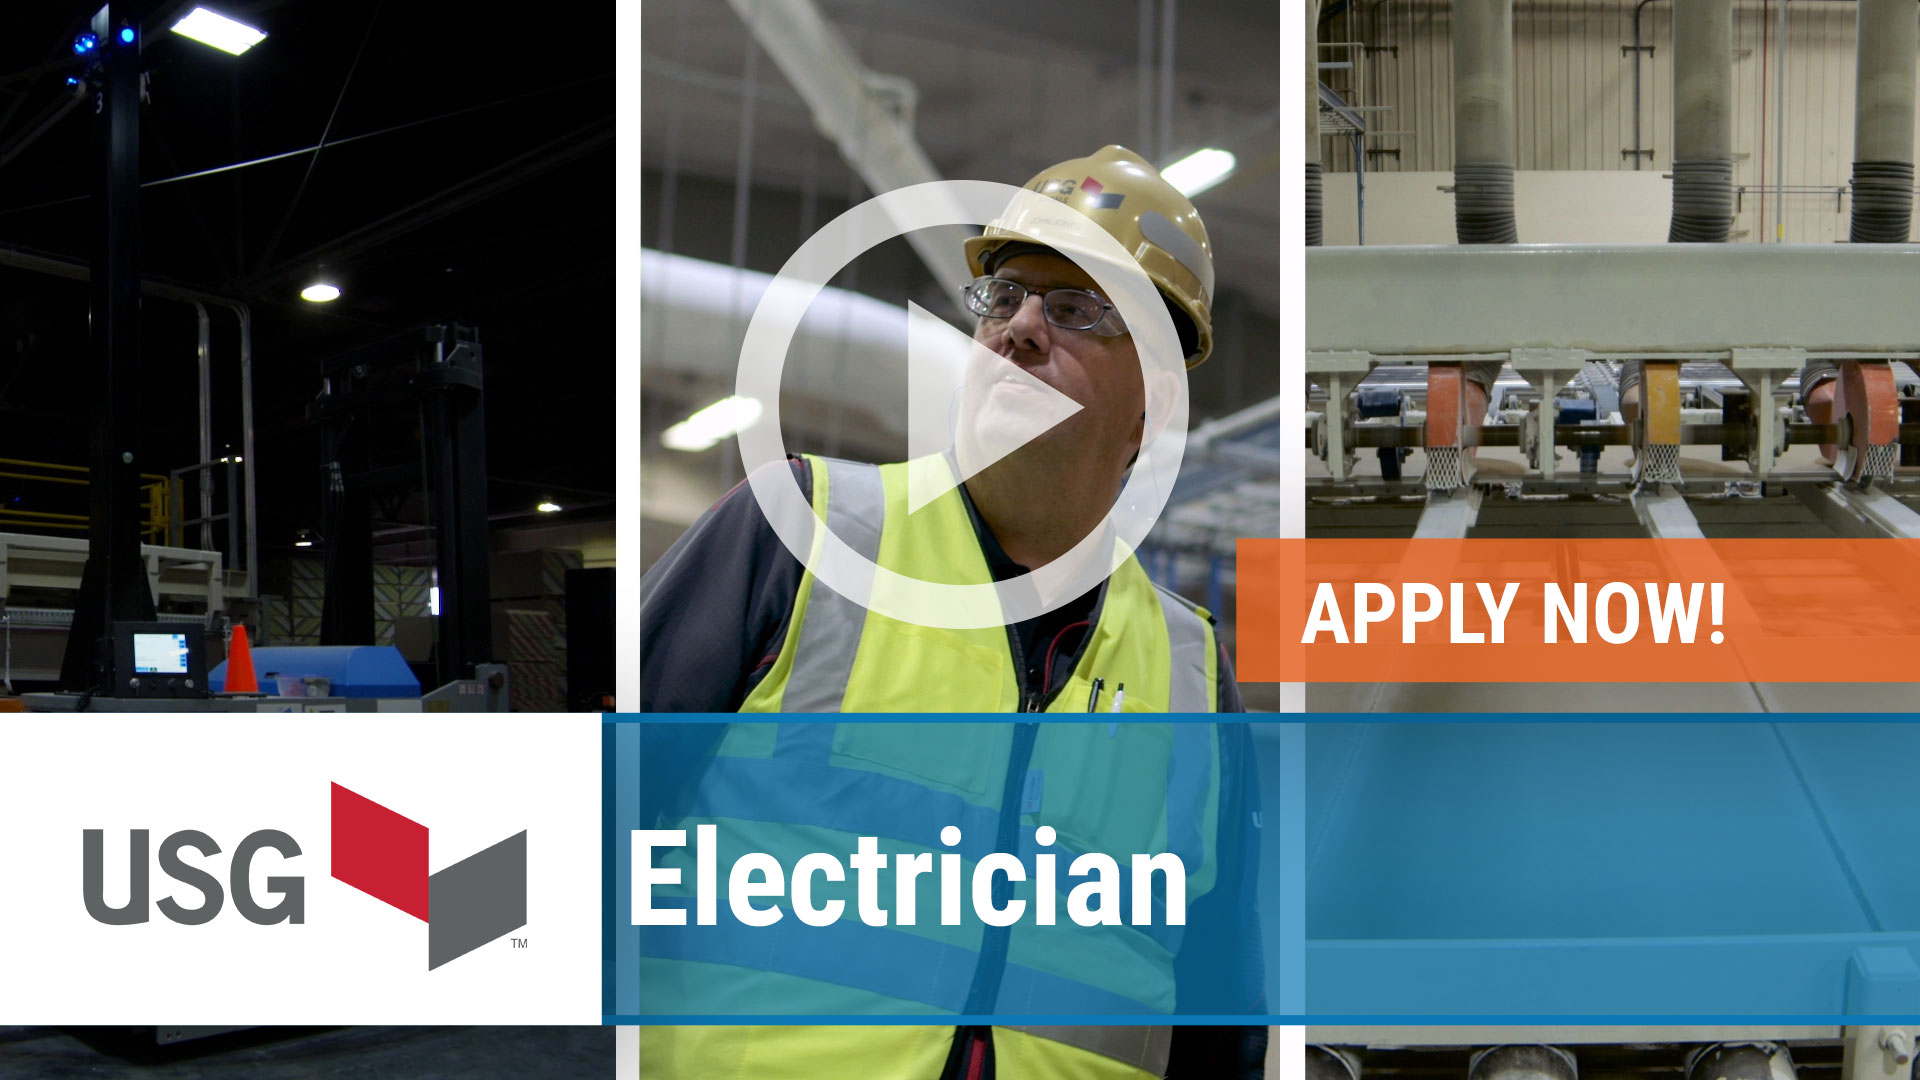 Watch our careers video for available job opening Electrician in Norfolk, VA, USA